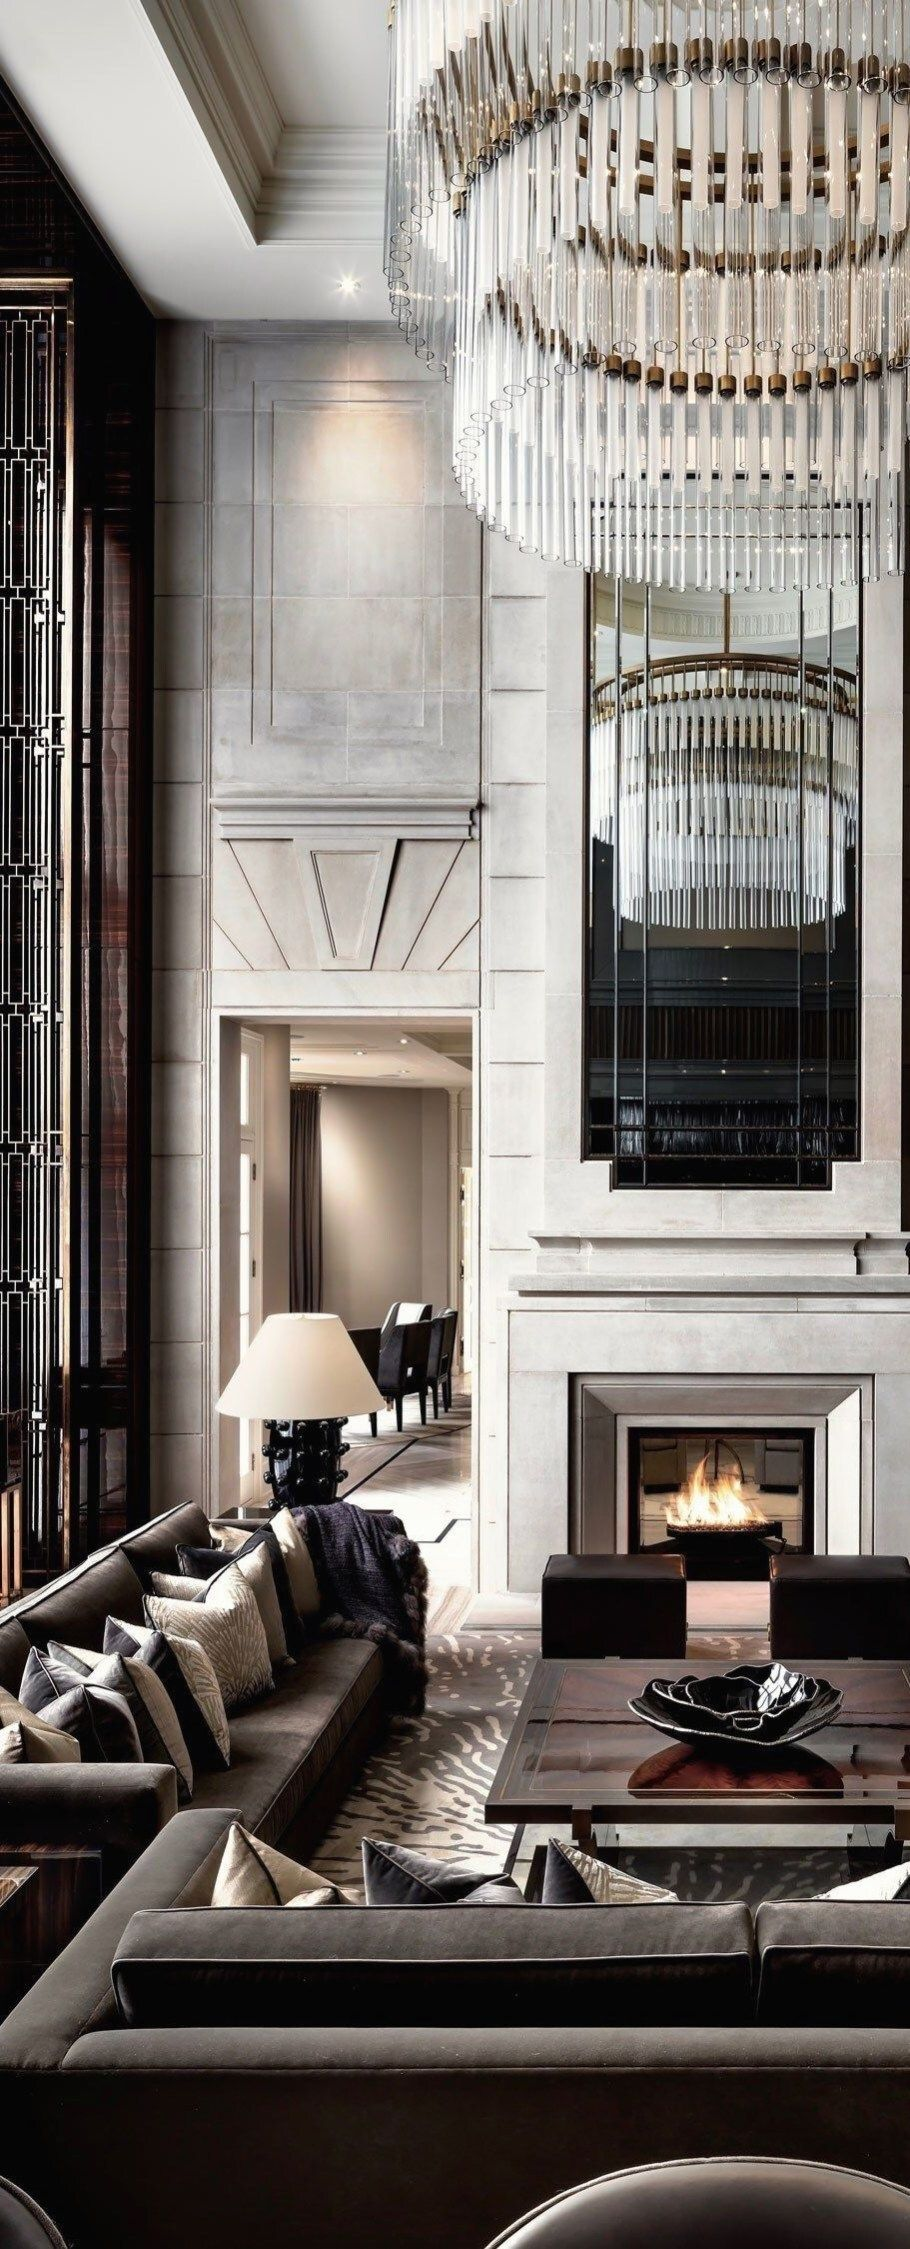 Ferris Rafauli Interior Design 100 Images On The Best Living Rooms Tchens Drooms And Luxury Interior Design Luxury Interior Interior Design Luxury Modern